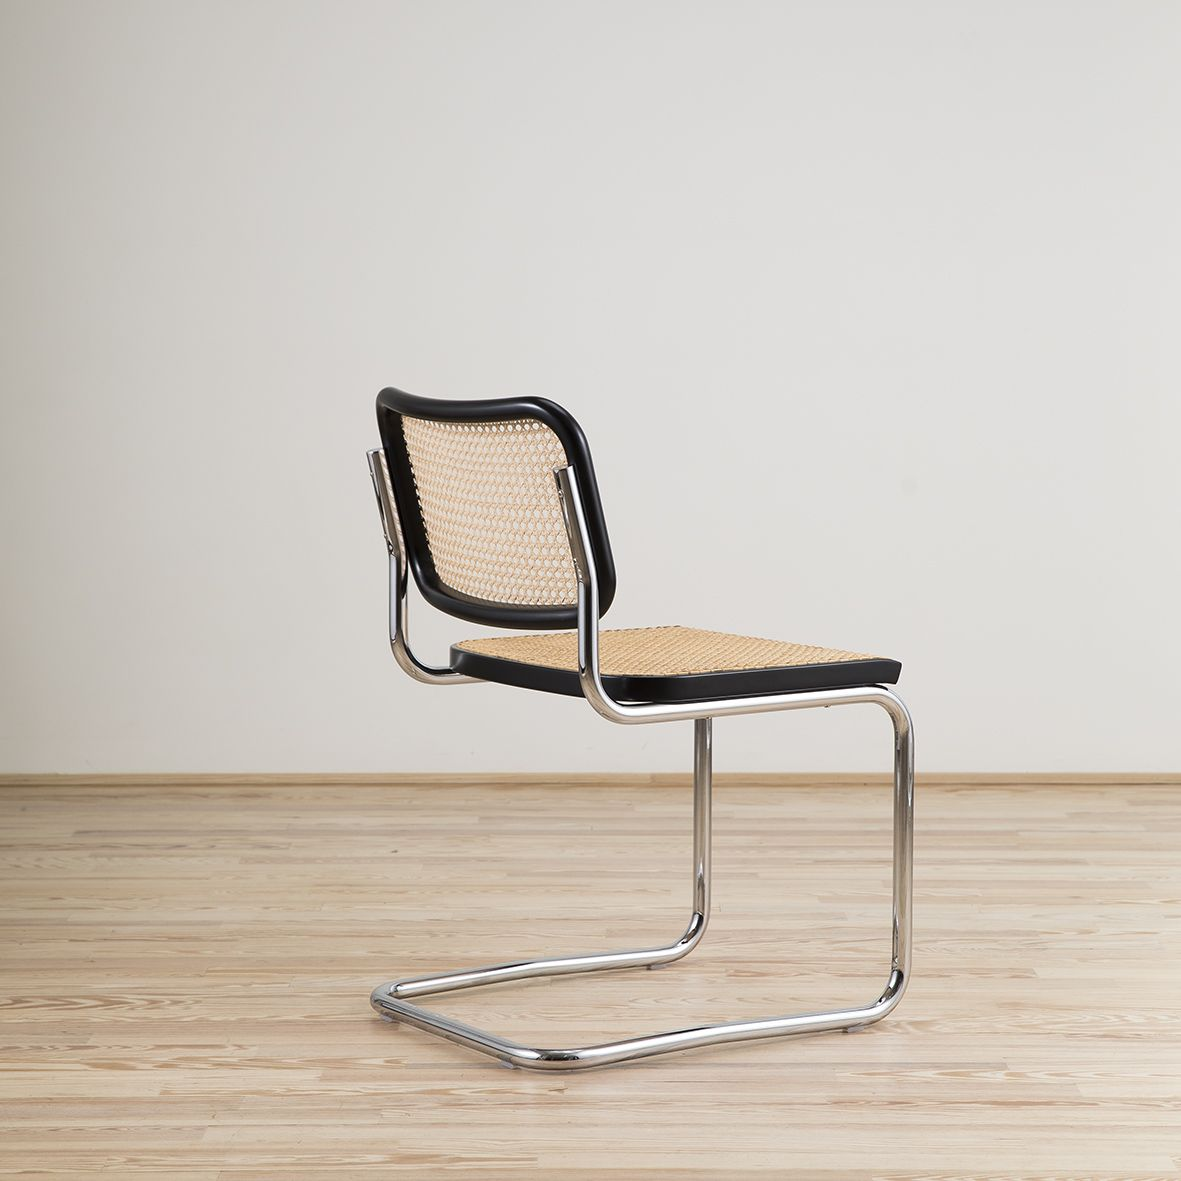 Cesca chair designed by Marcel Breuer and edited by knoll